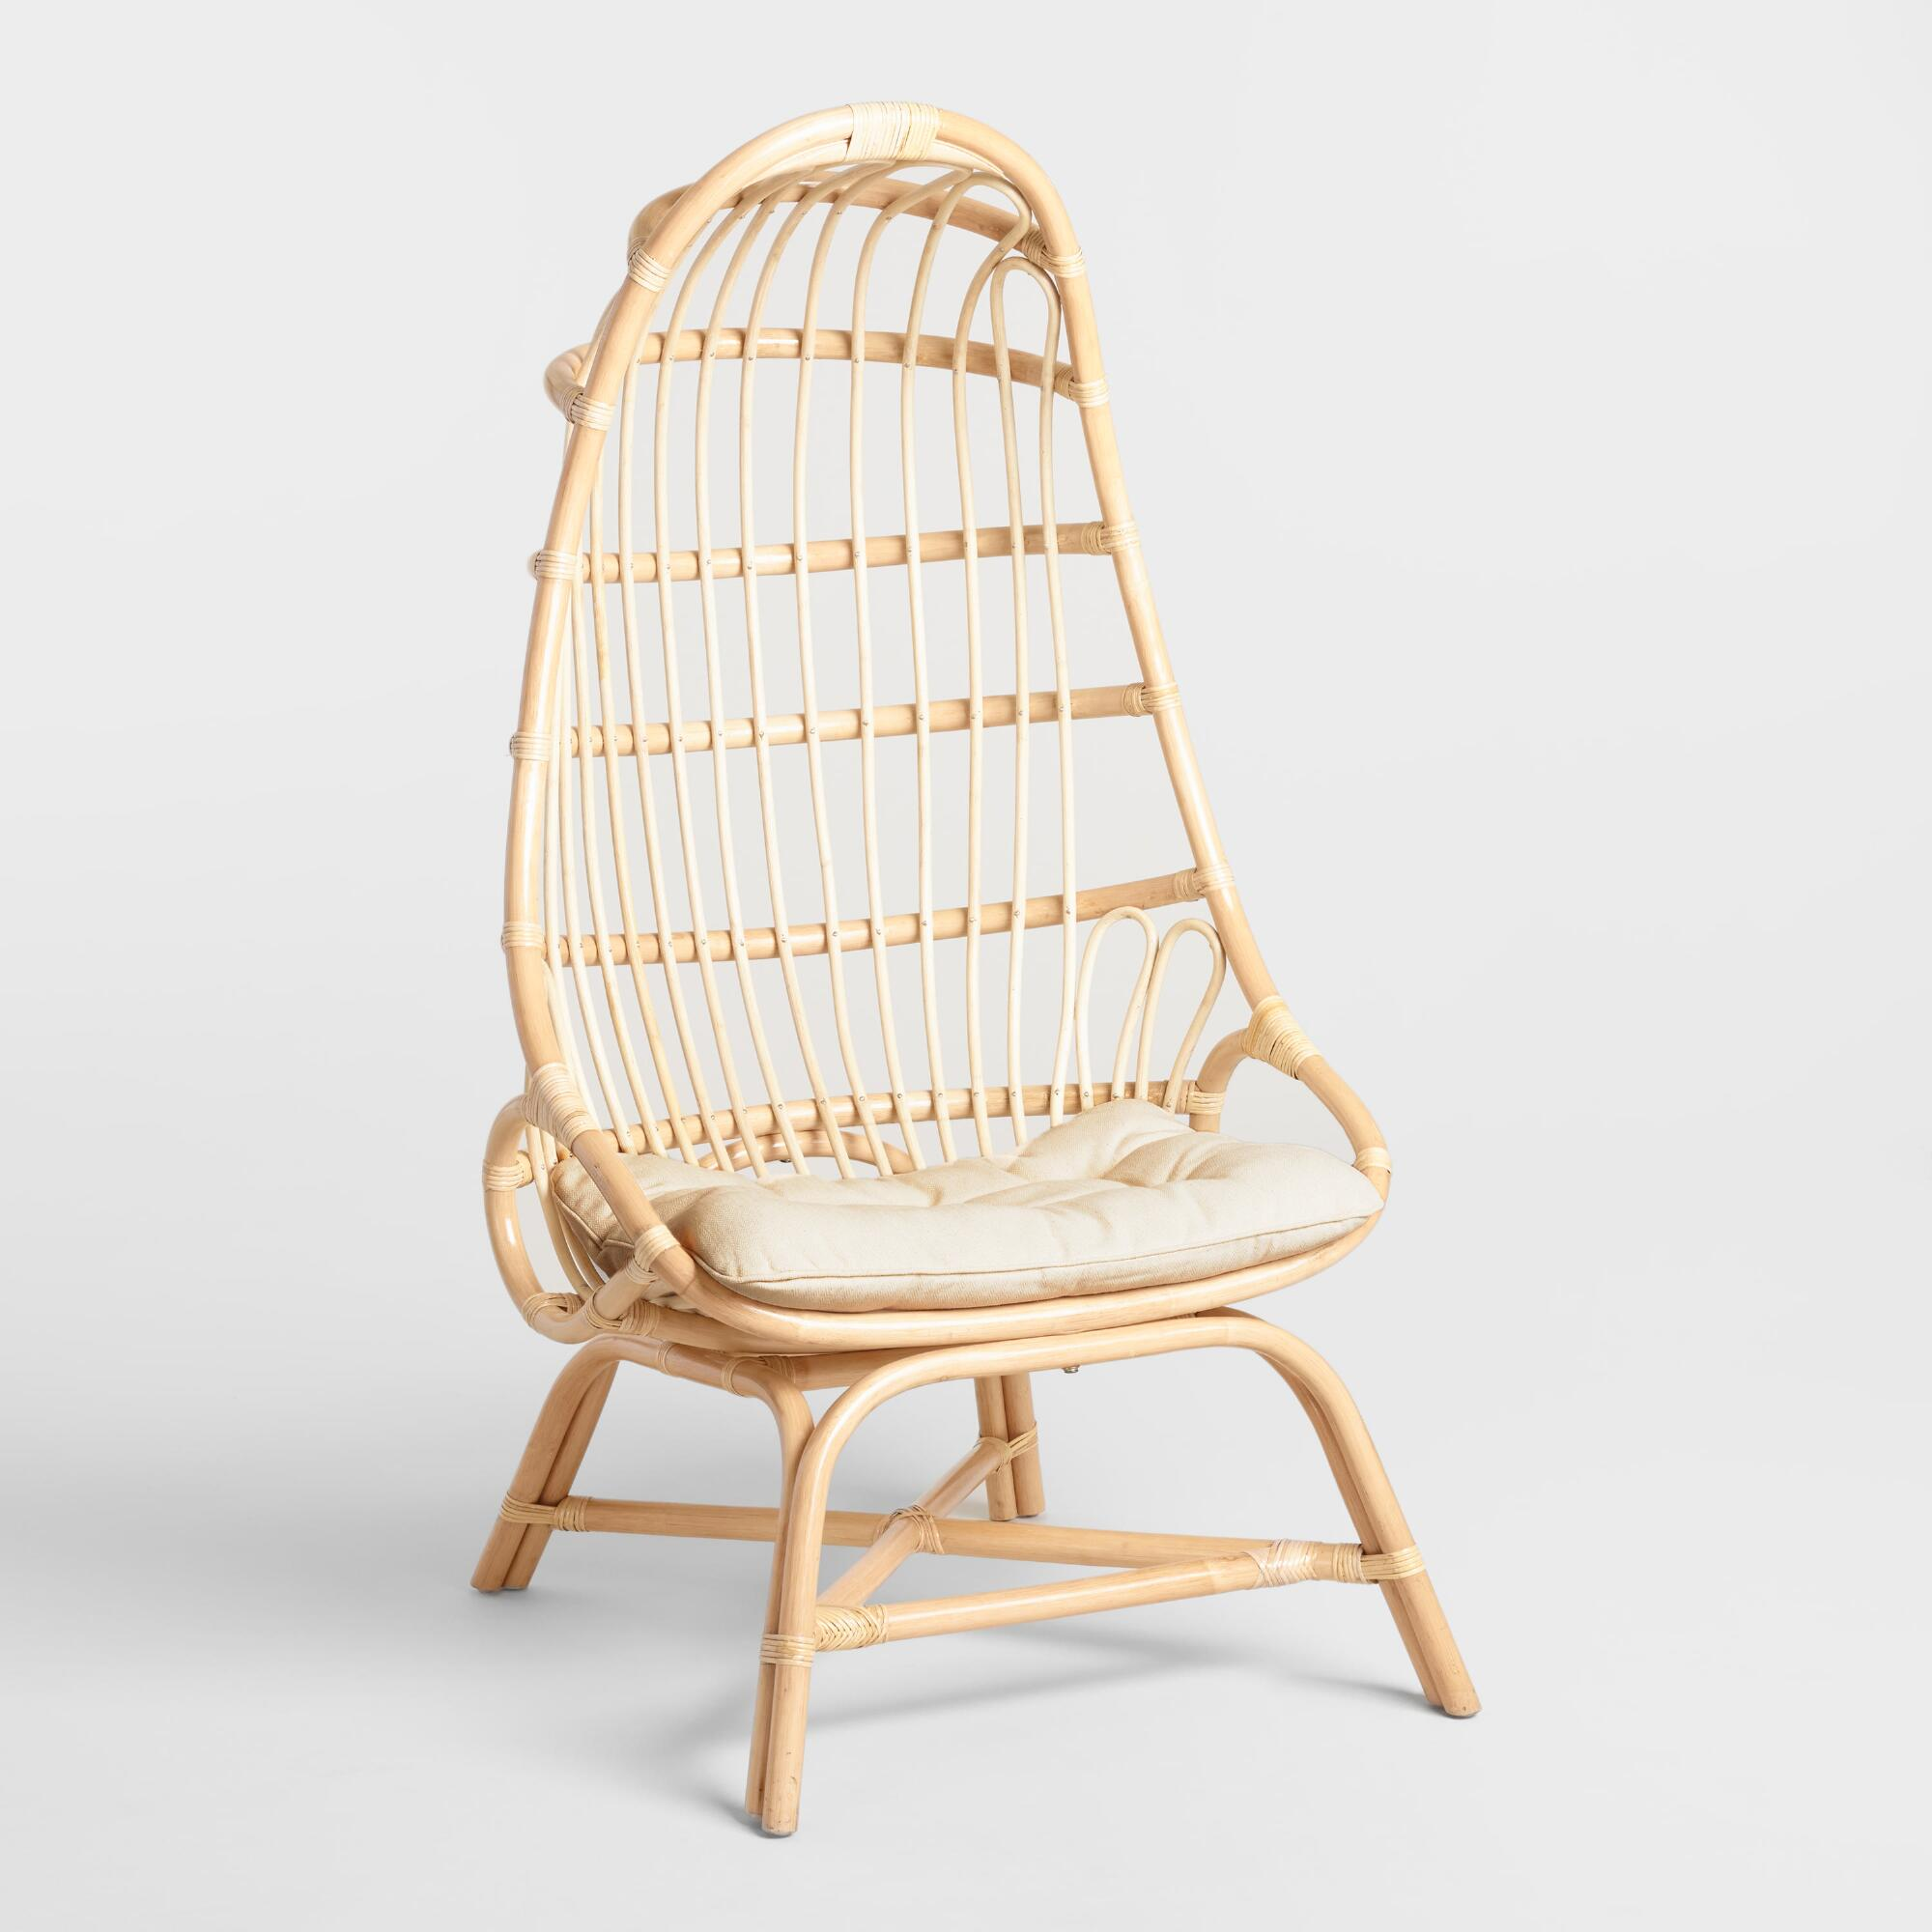 Inspired by rattan chair swings, our cocoon chair boasts a curvy silhouette, comfy cushion and irresistible style. Design details like Its natural finish and its Velcro cushion make it endlessly versatile.